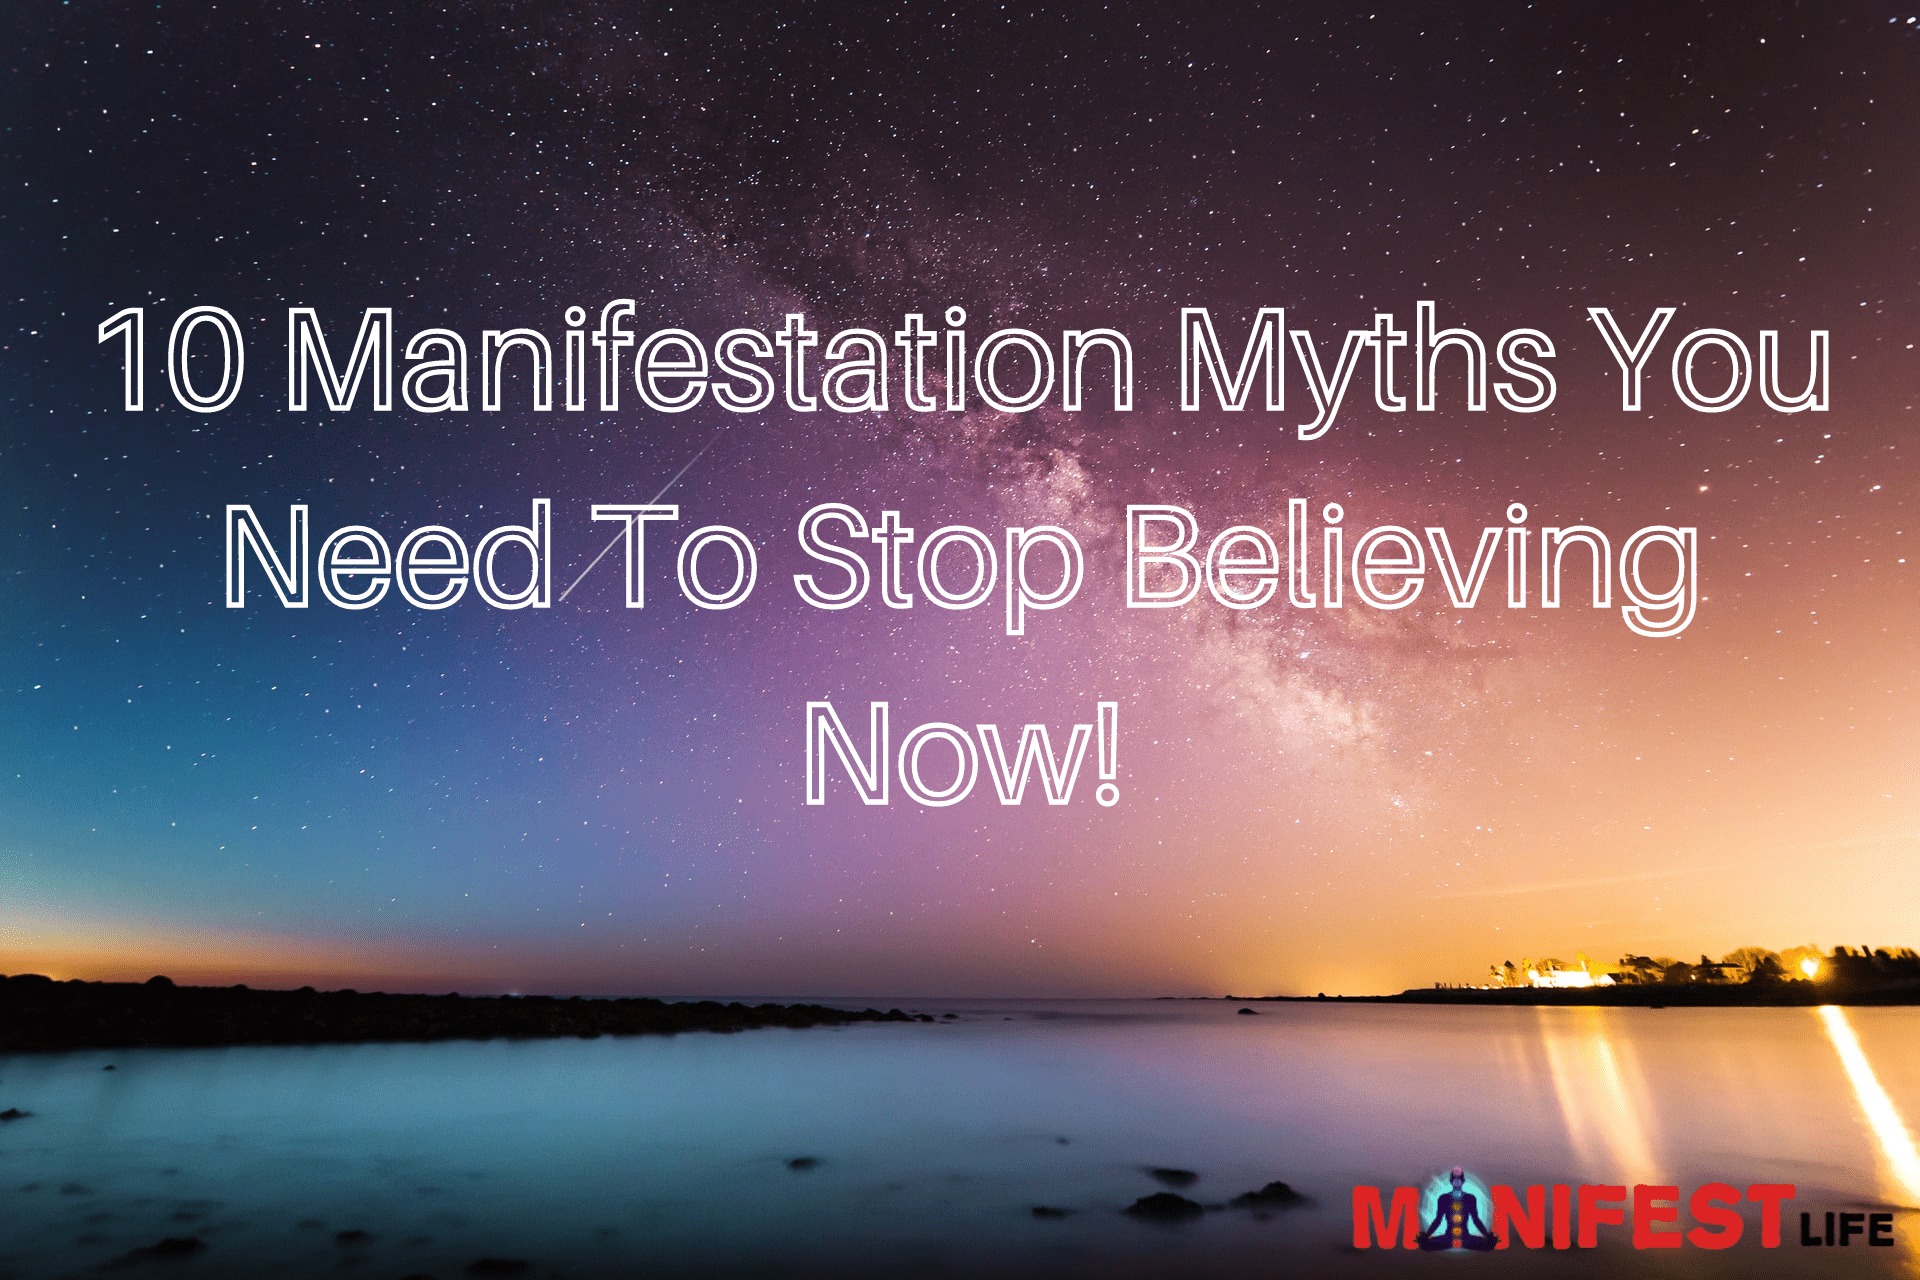 10 Manifestation Myths You Need To Stop Believing Now!